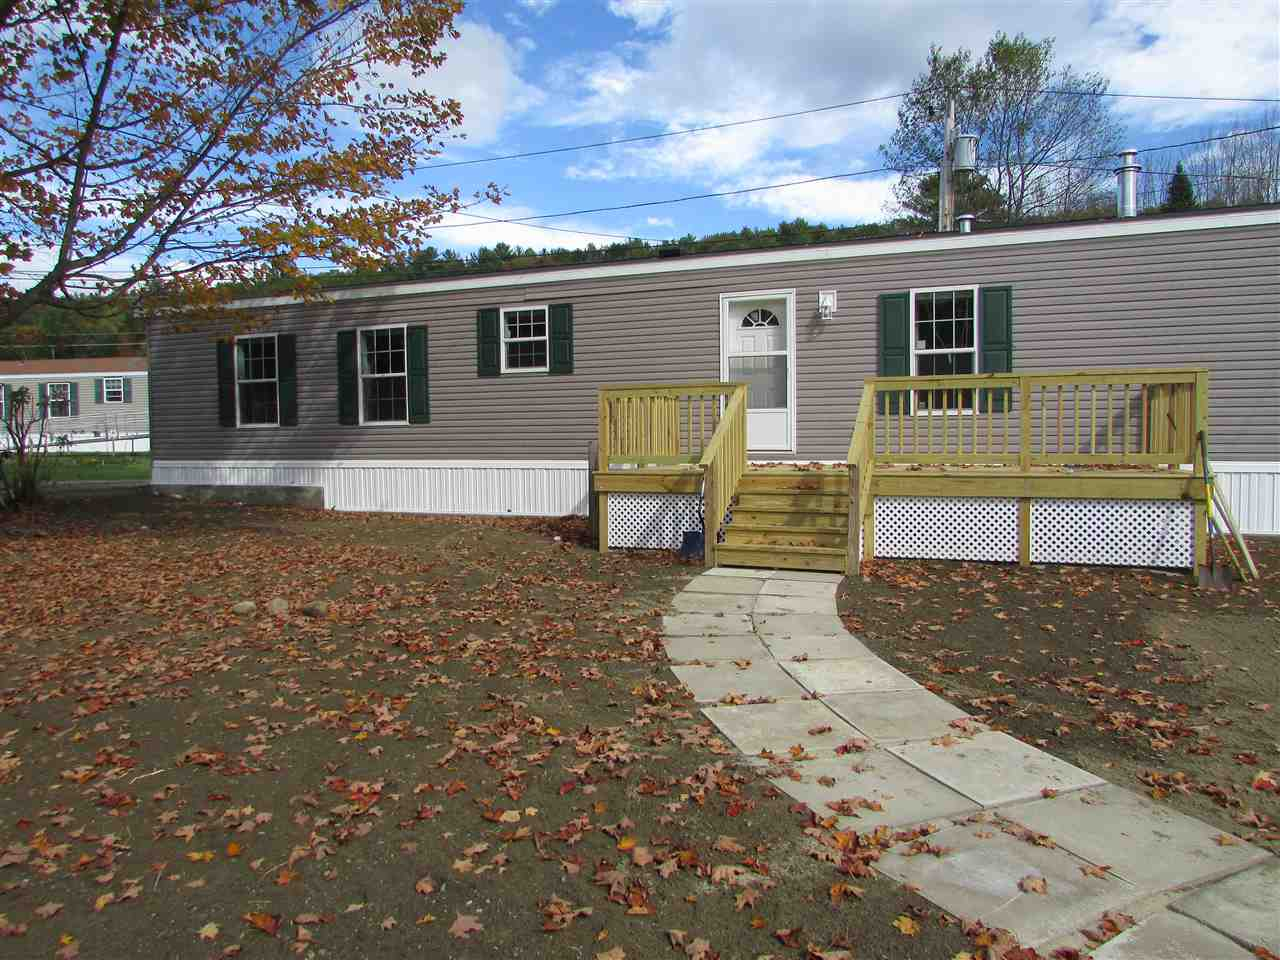 695 Dartmouth College Hwy Road 16, Lebanon, NH 03766